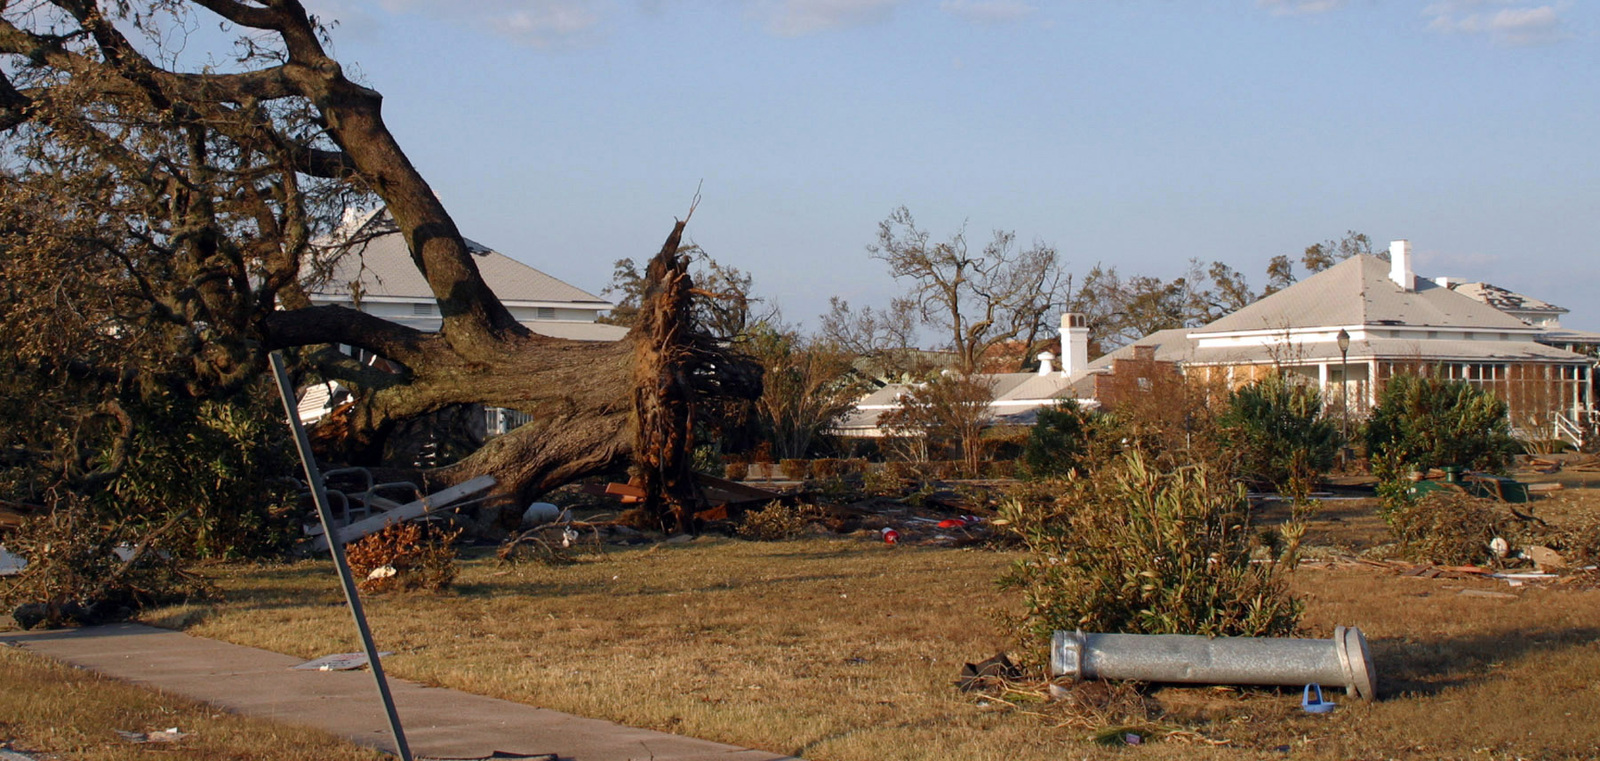 Hurricane Ivan inflicted severe damage to US Navy (USN) facilities on Naval Air Station (NAS) Pensacola, Florida